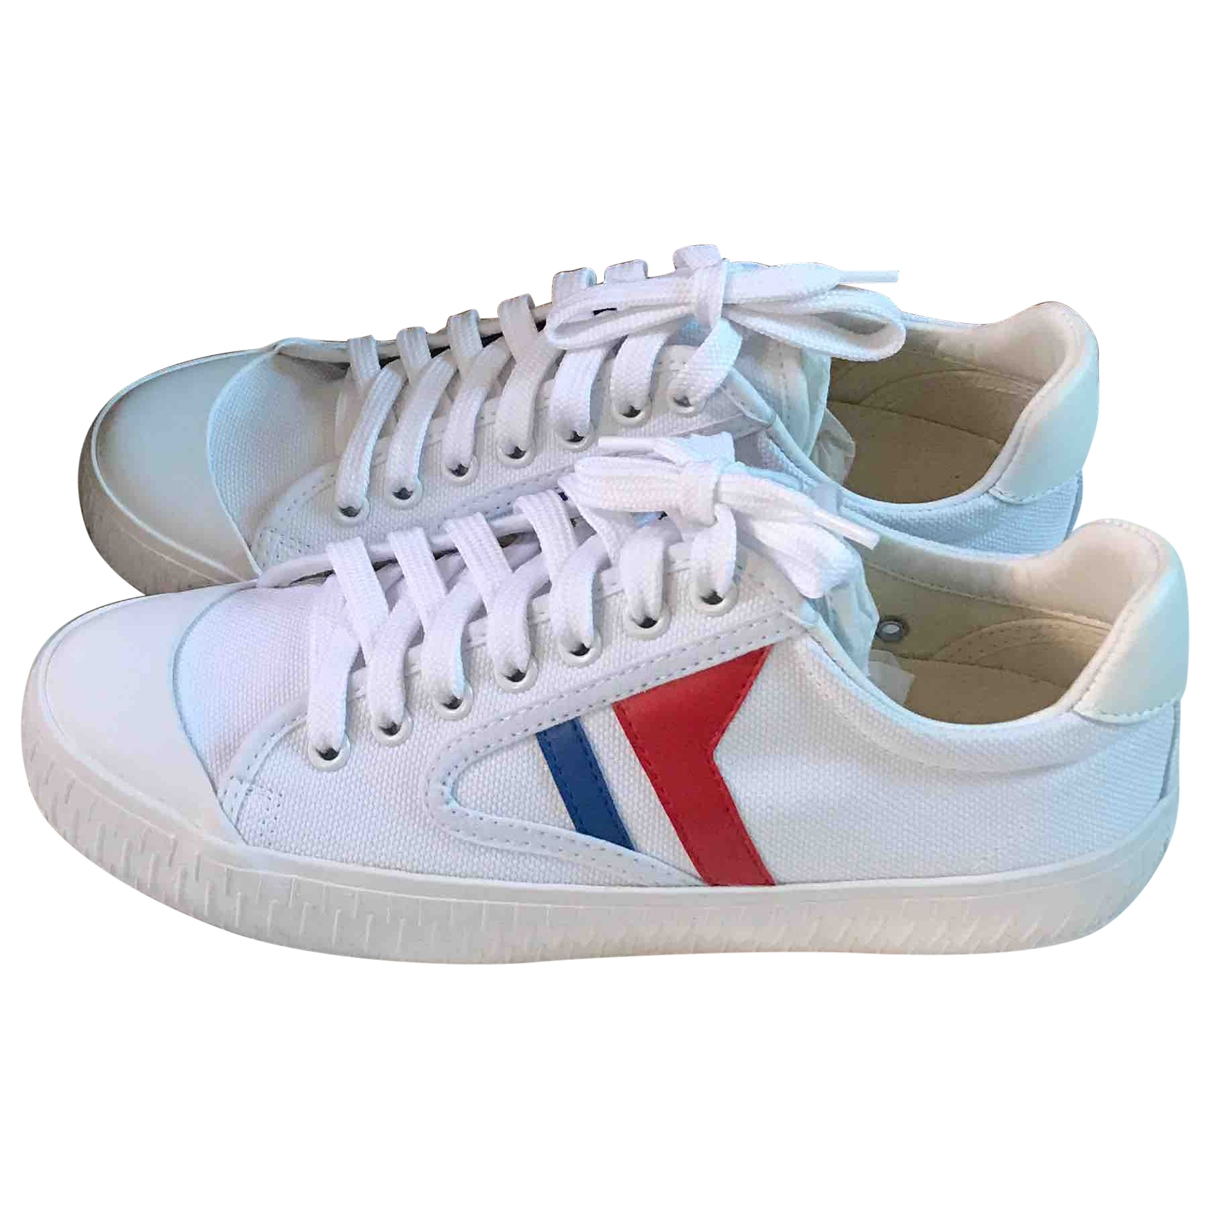 Celine Delivery White Cloth Trainers for Women 37 EU